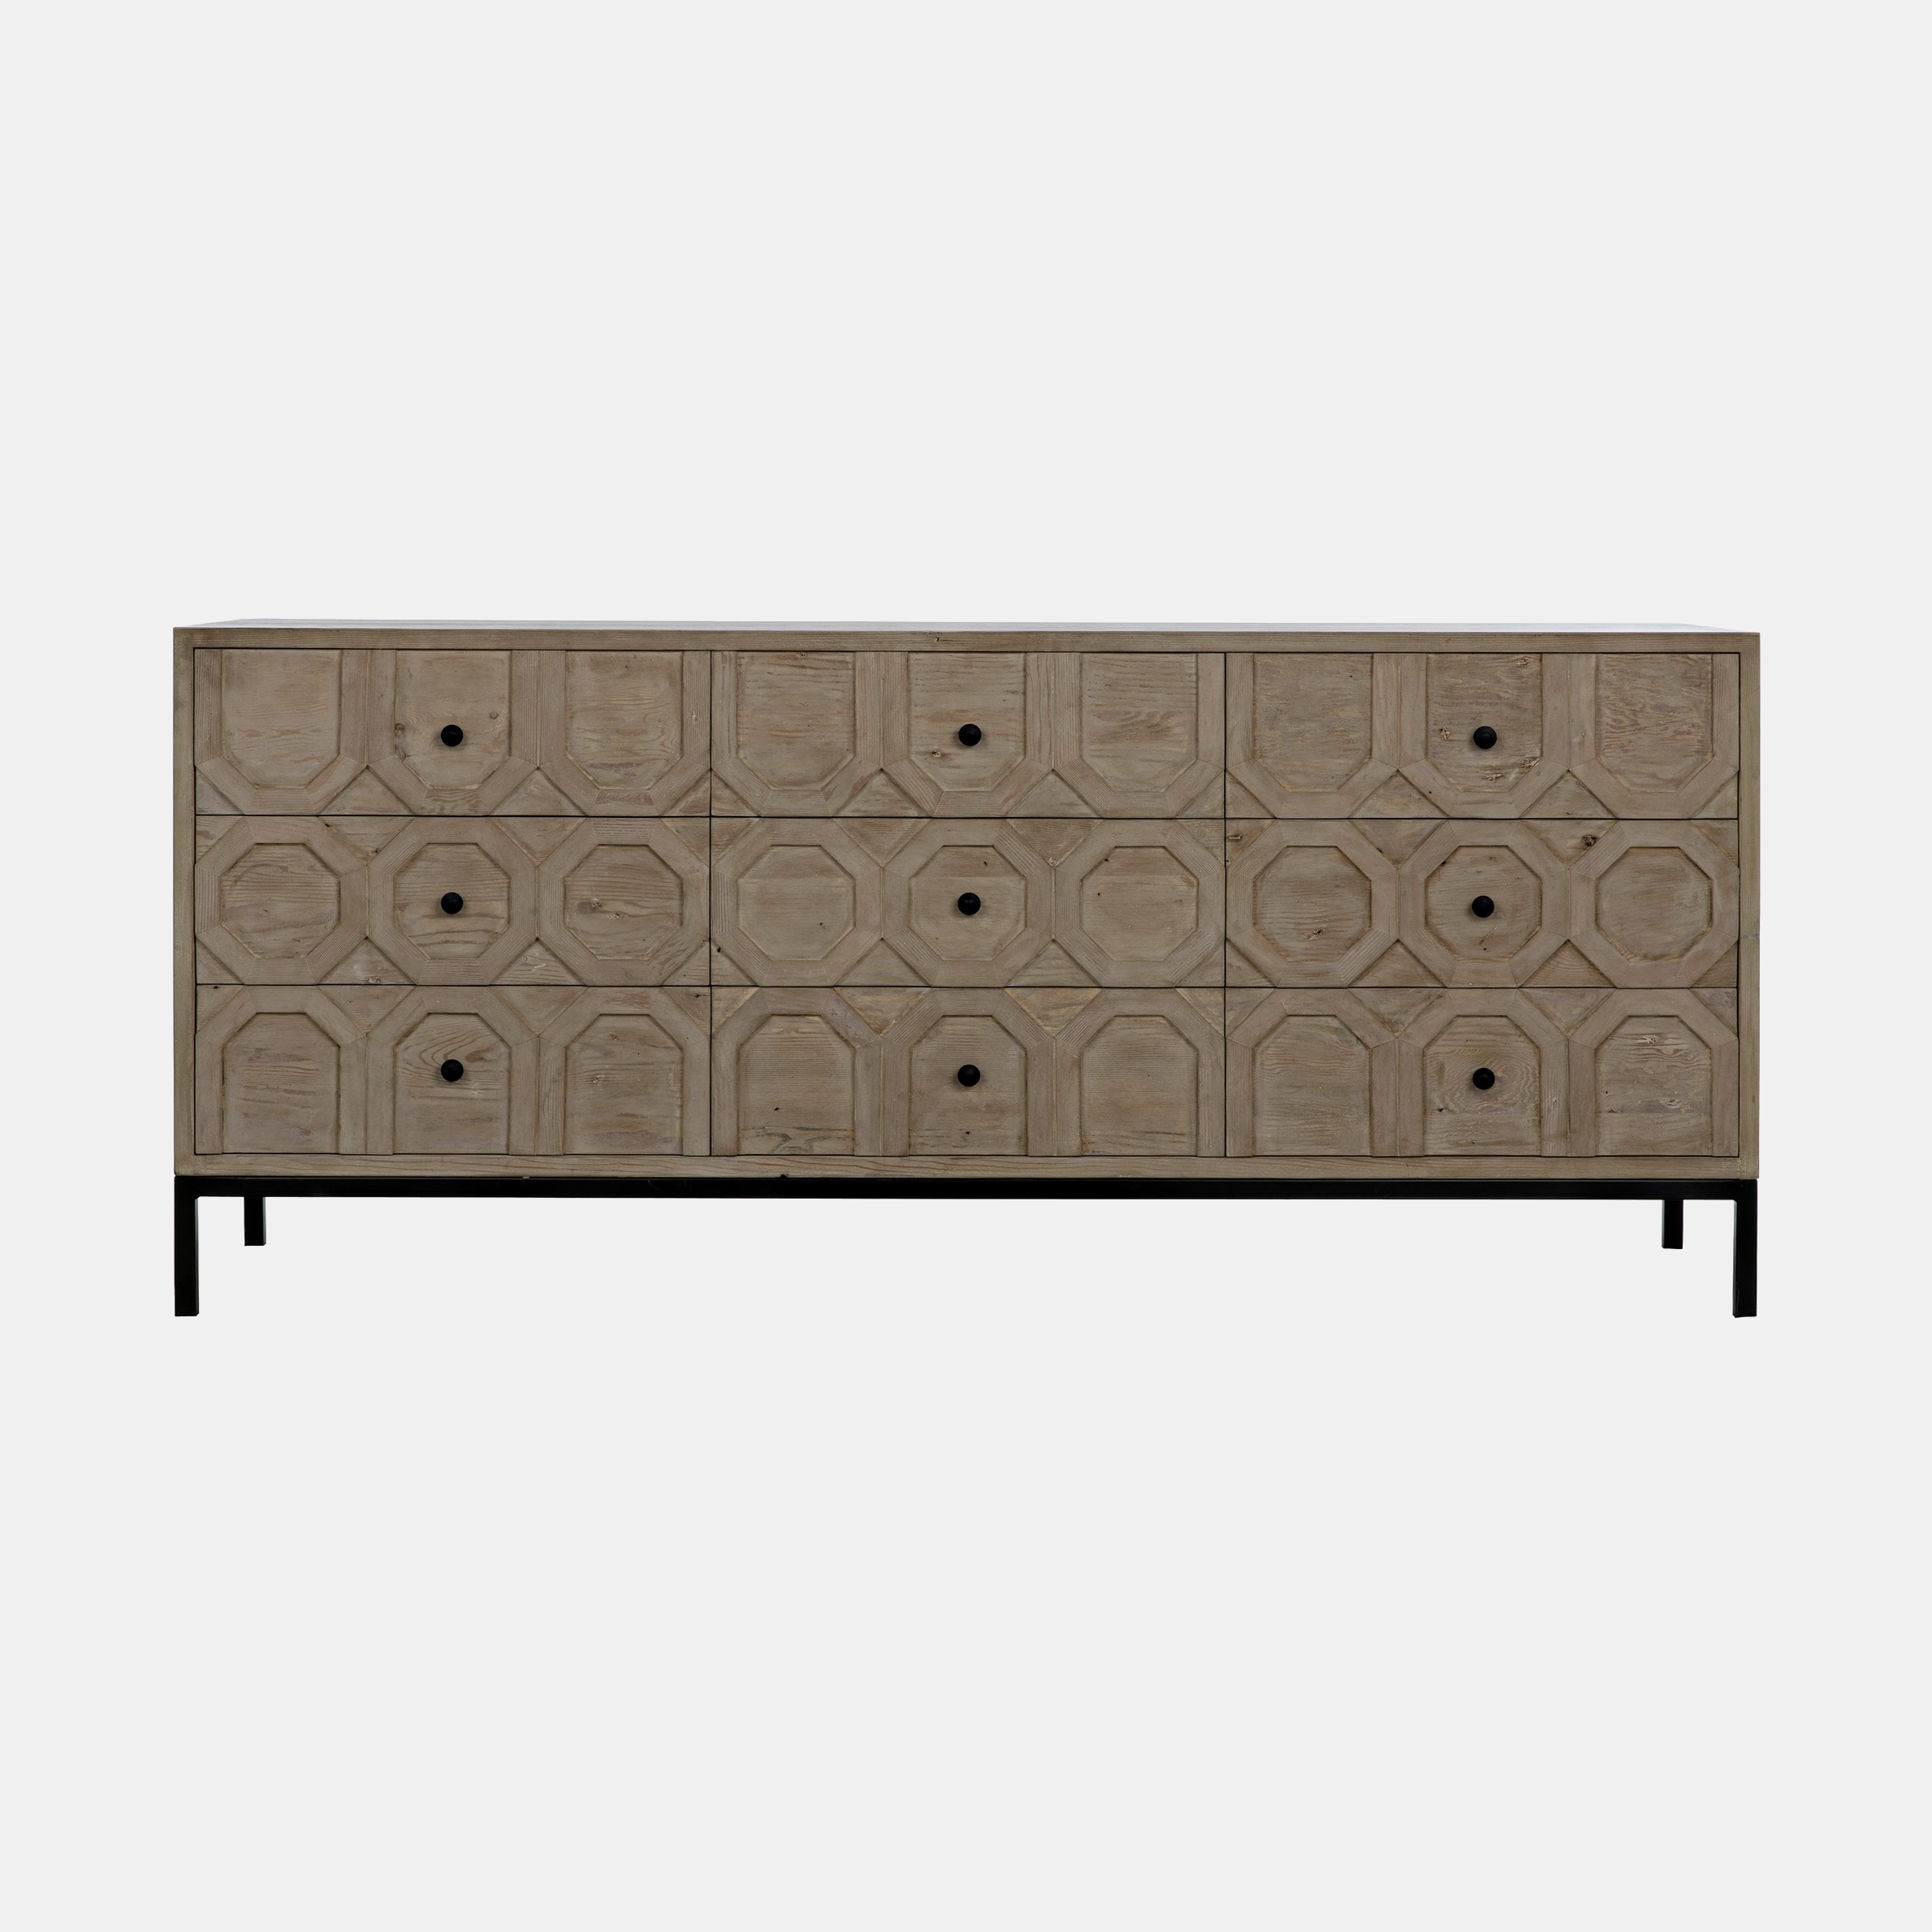 "Hadley Buffet  74""l x 22""d x 32.5""h Available in shellacked walnut or gray wash wax fir (shown). Also available as 3-drawer dresser 34""l x 20""d x 31""h. SKU2399CFC"